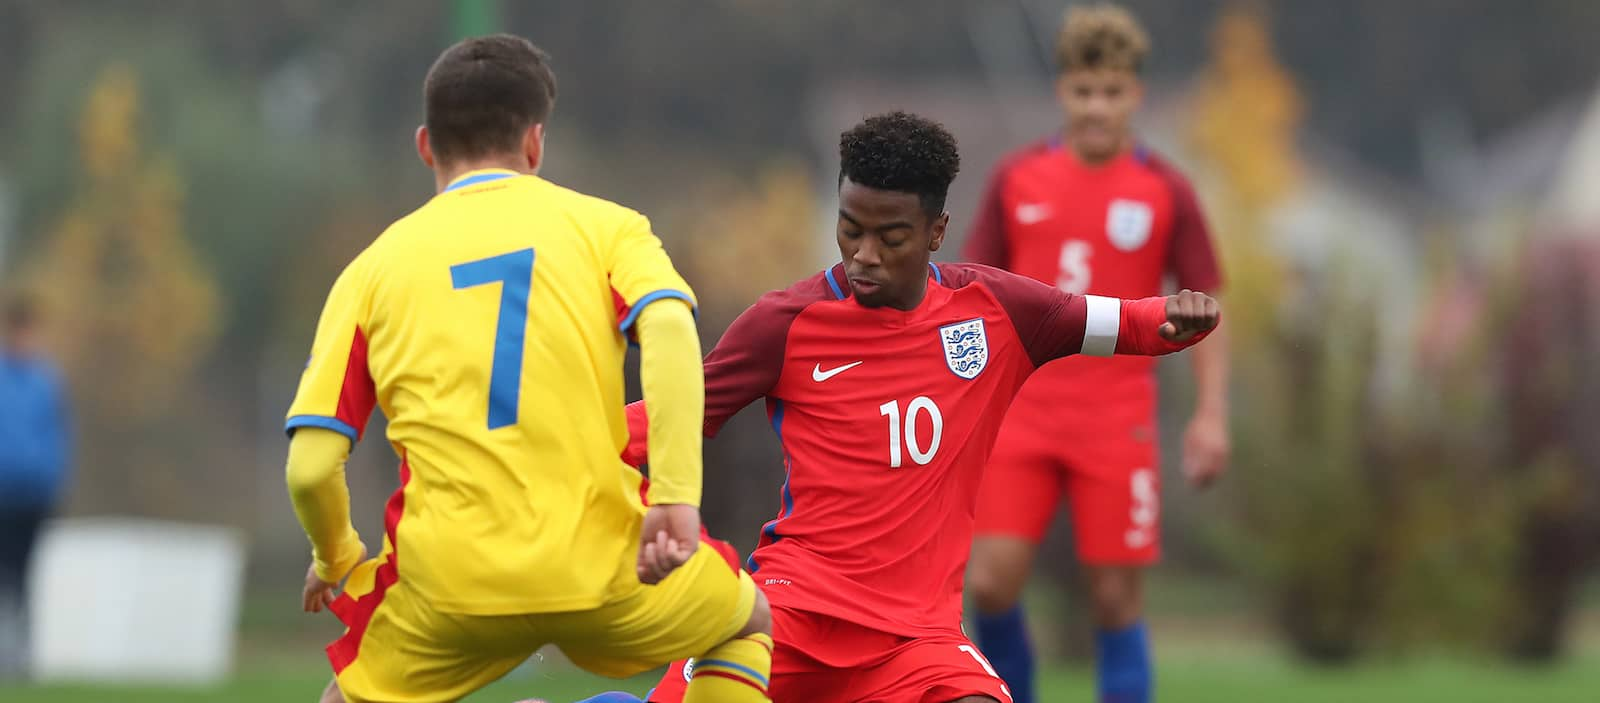 Video: Angel Gomes scores fantastic free-kick for England under-17s